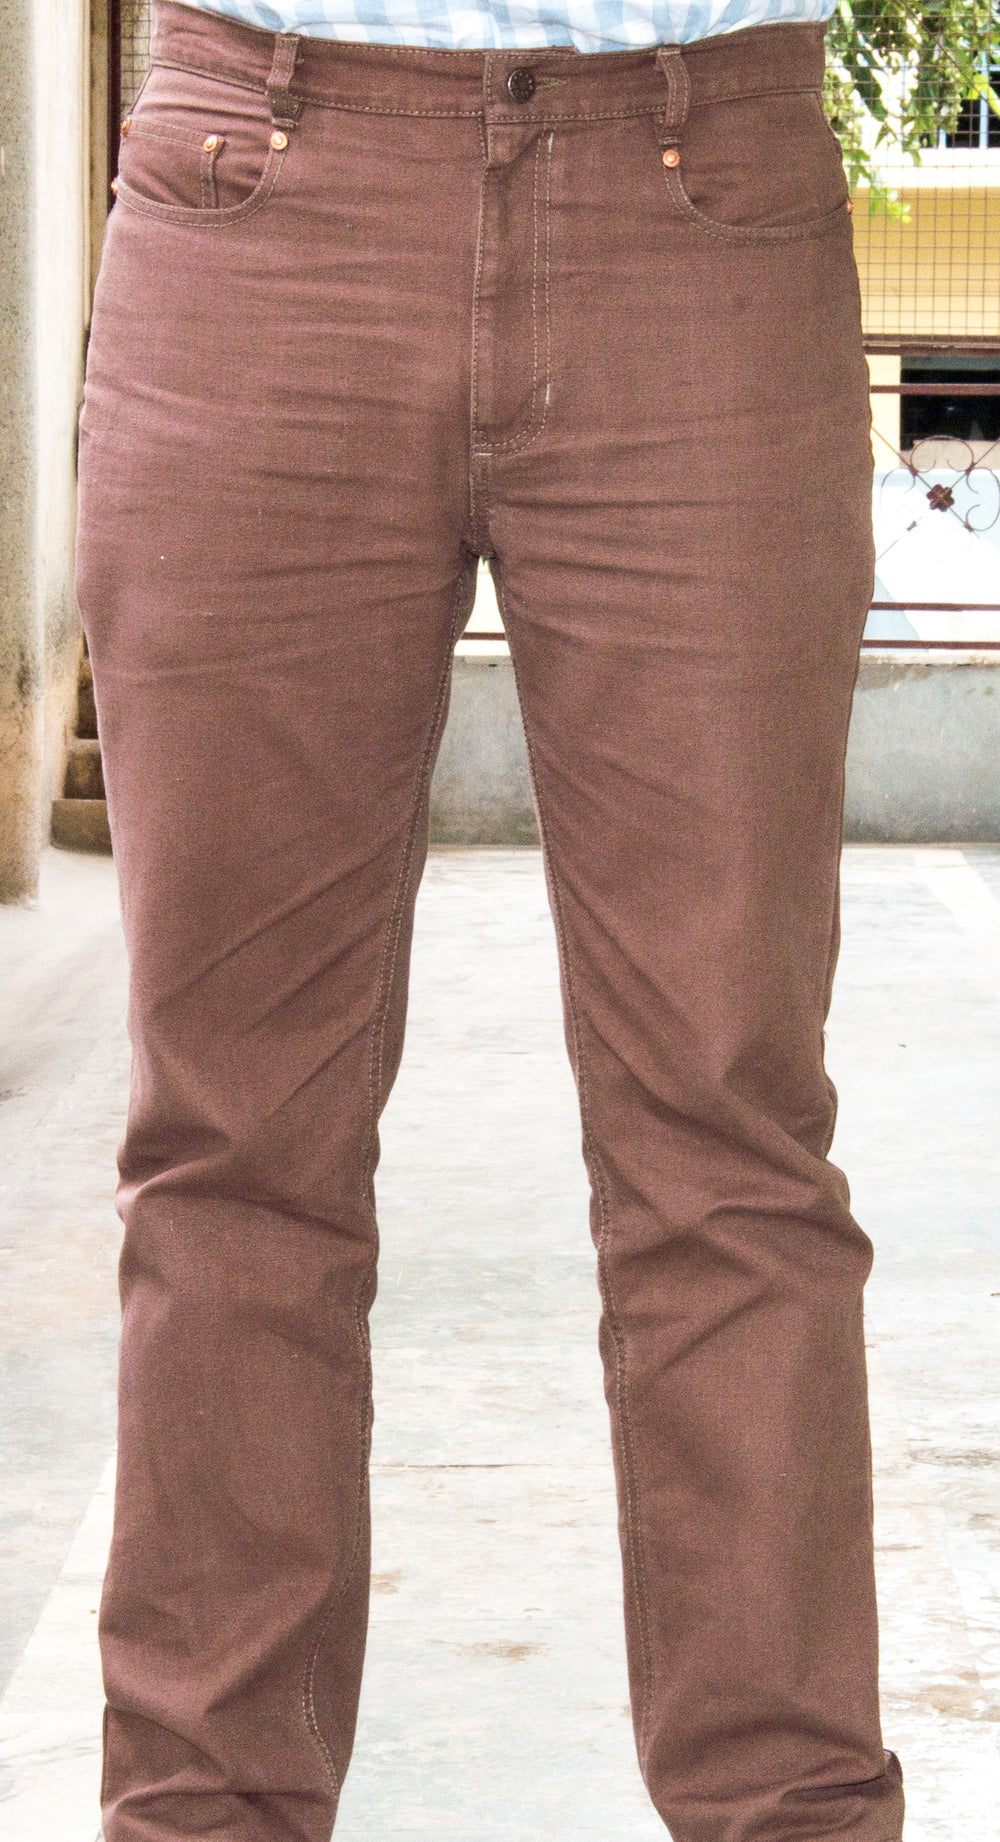 Chocolate Brown Canvas Jeans